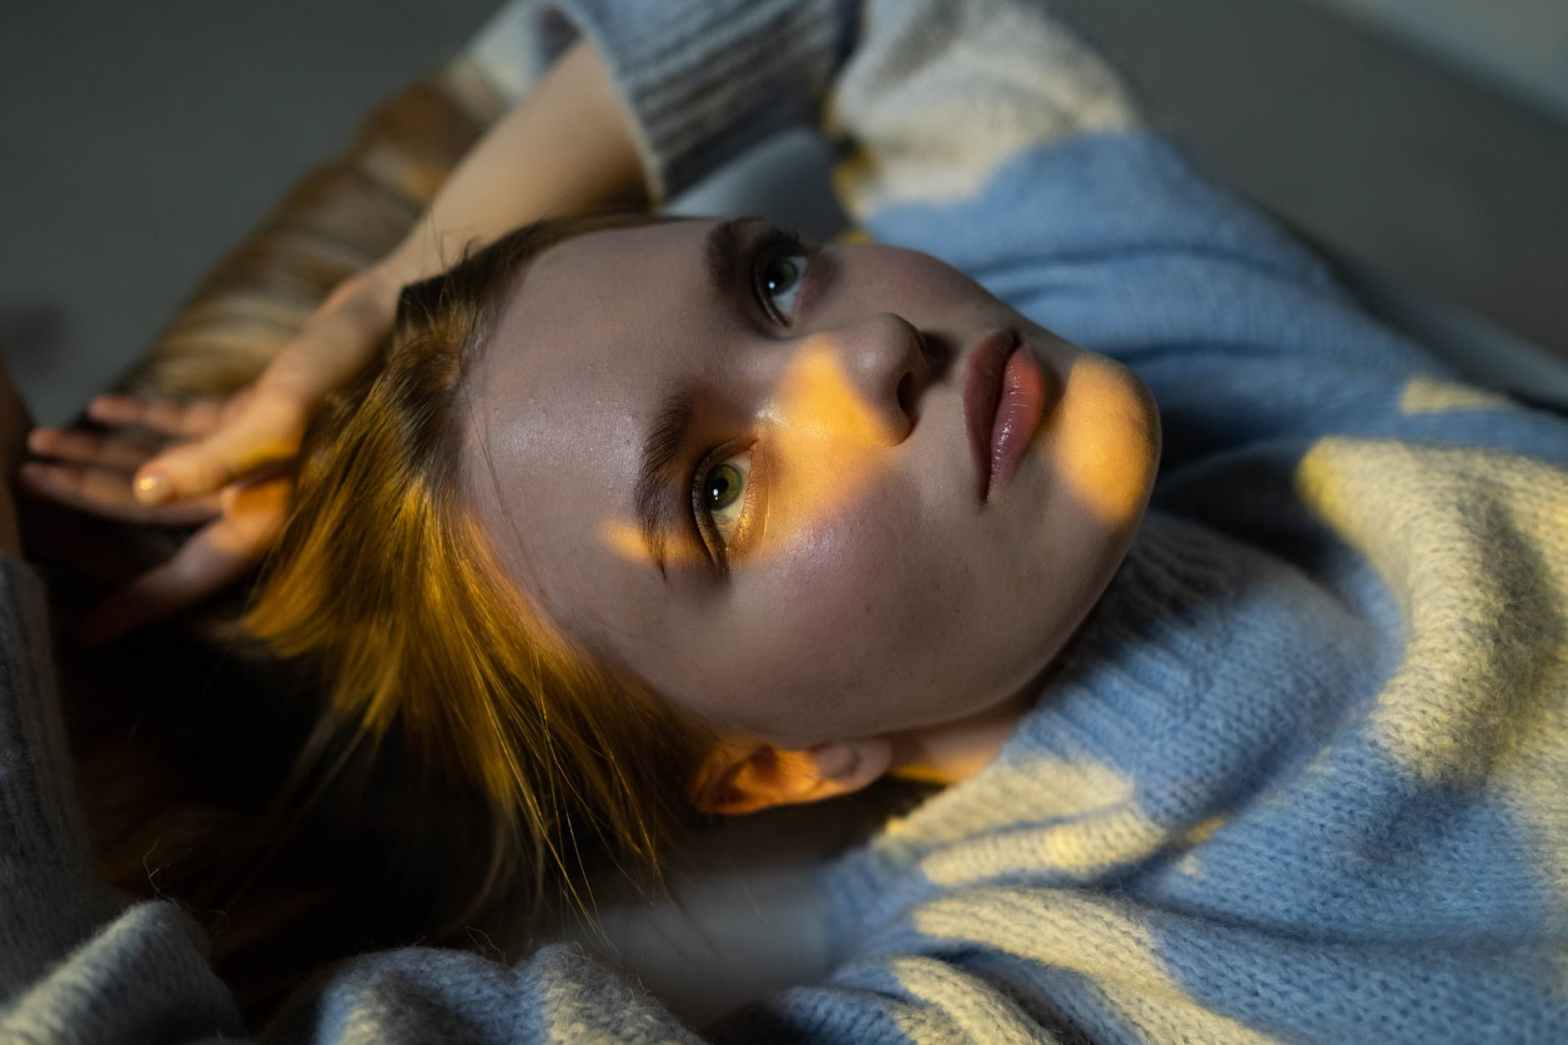 woman in blue sweater lying on bed